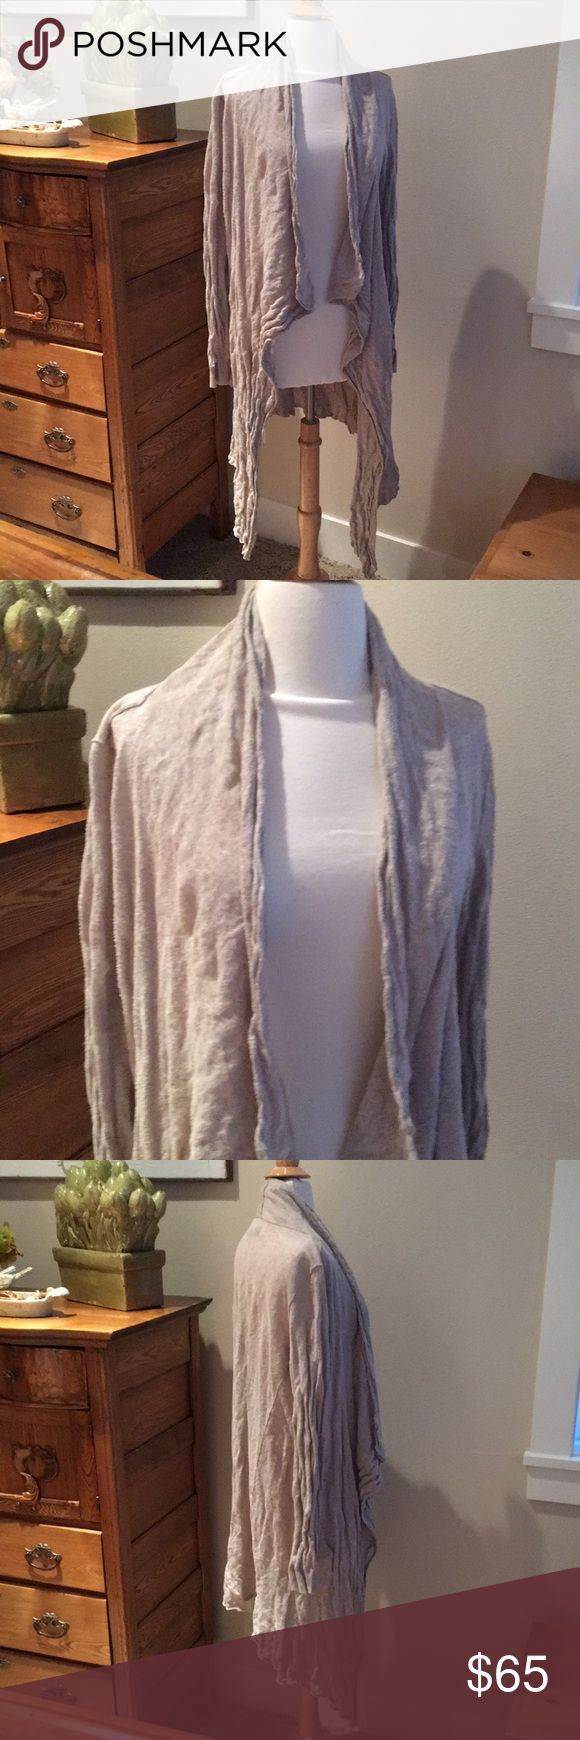 AllSaints Spitafields waterfall cardigan sweater Made with taupe cotton and metallic fibers this crinkled asymmetrical cardigan is size 10 UK which translates into a US size 6 or small. So cute with leggings and a tank top. All Saints Sweaters Cardigans